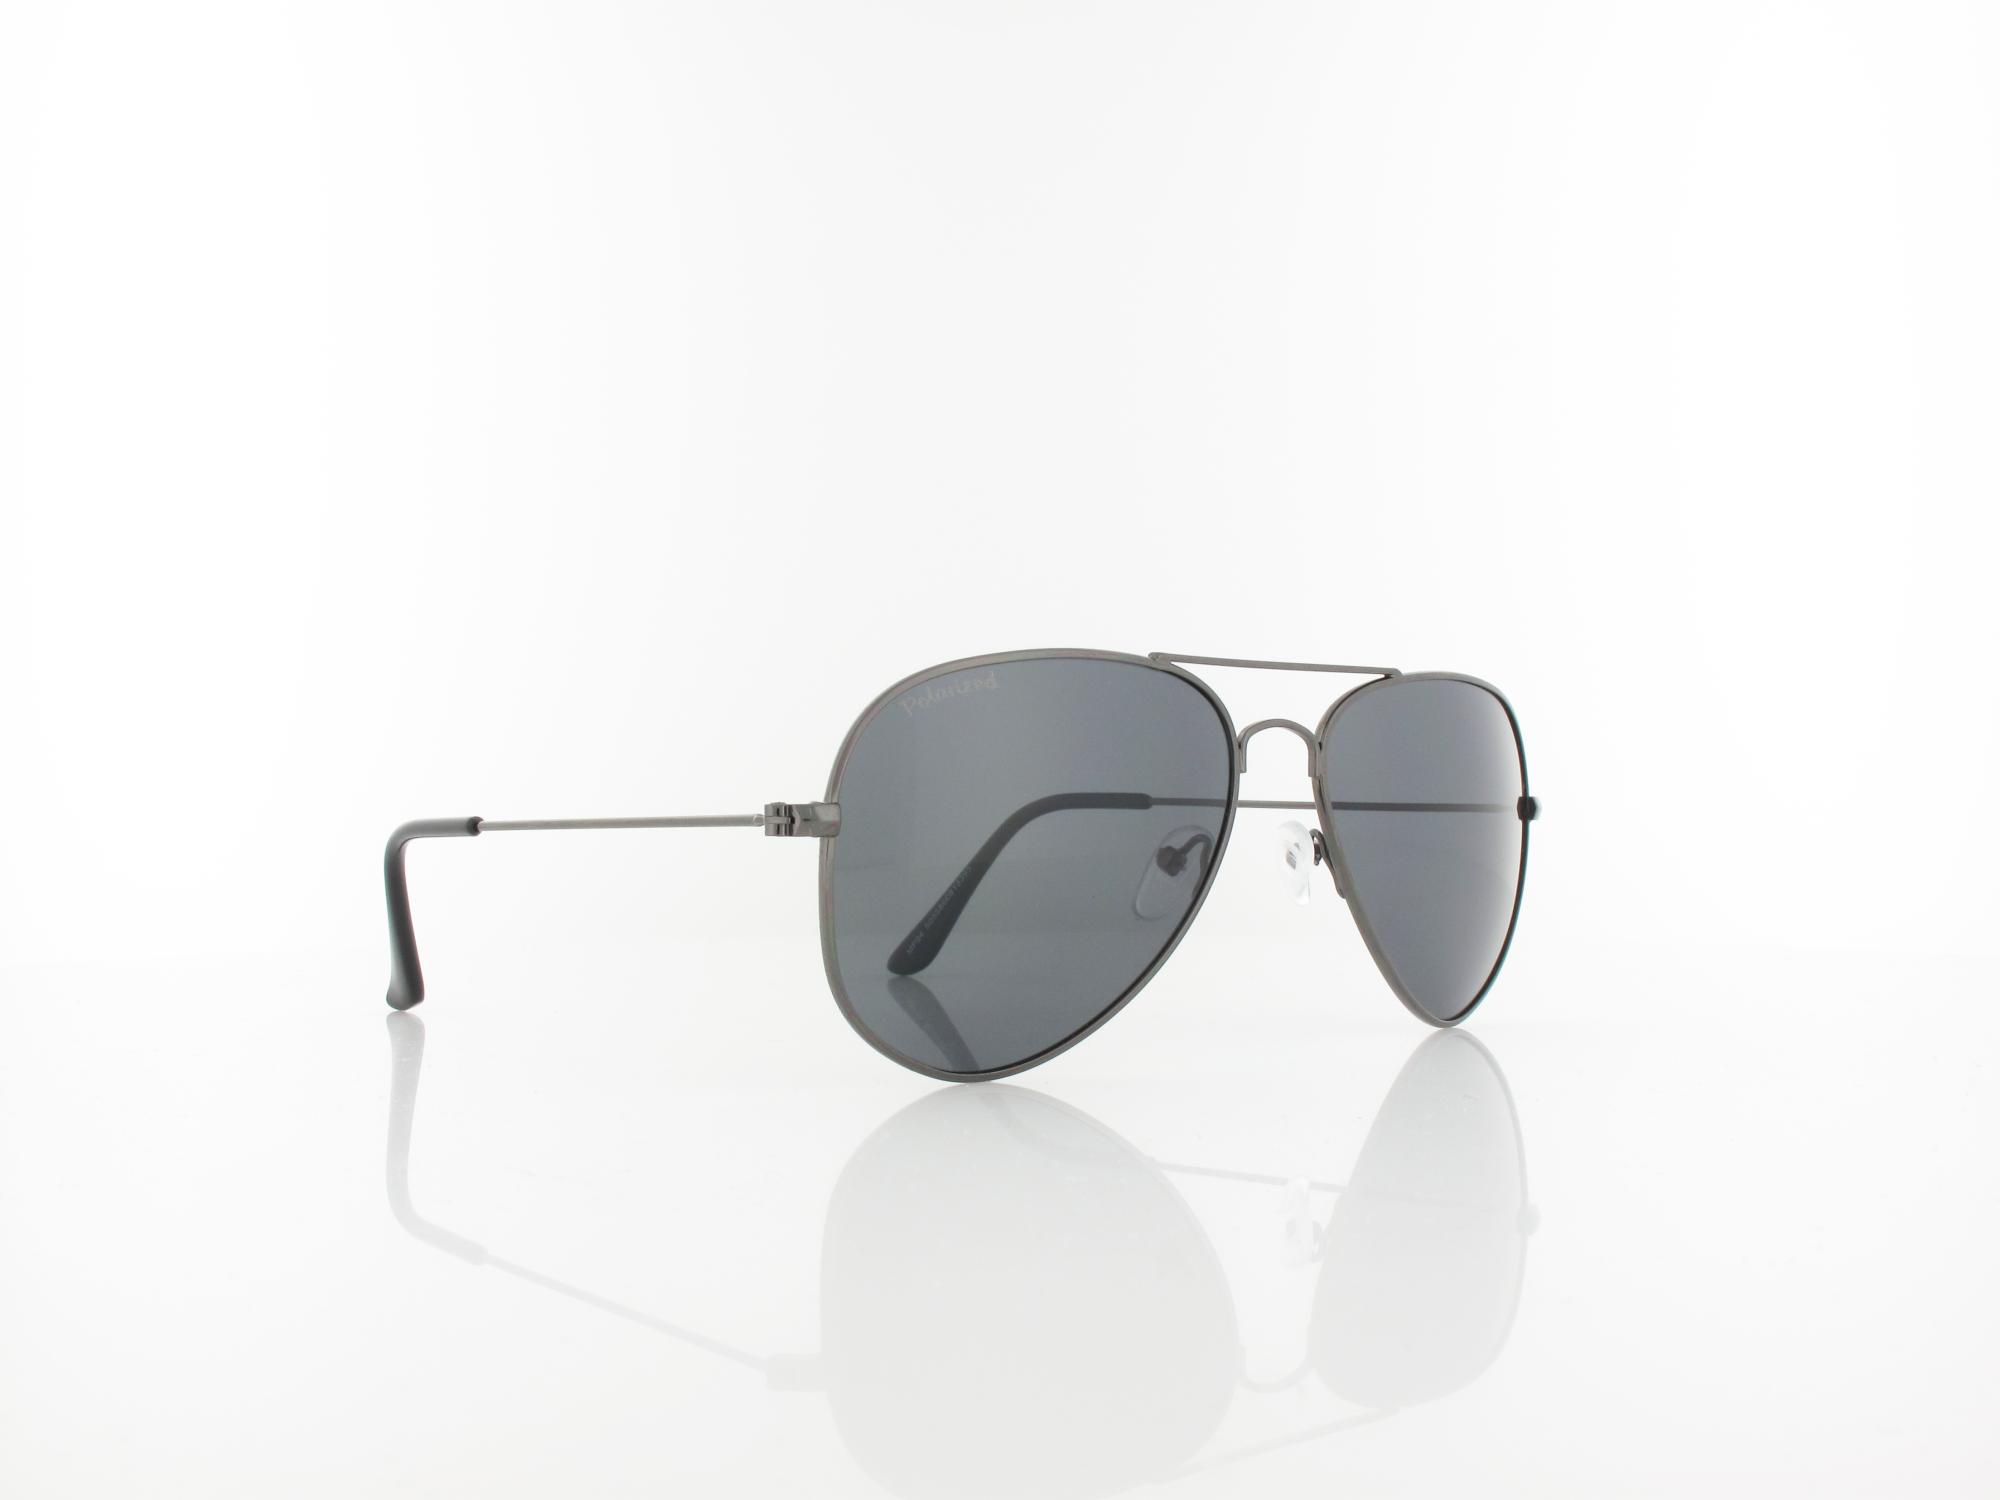 Brilando | MP94 0 57 | gunmetal / grey polarized